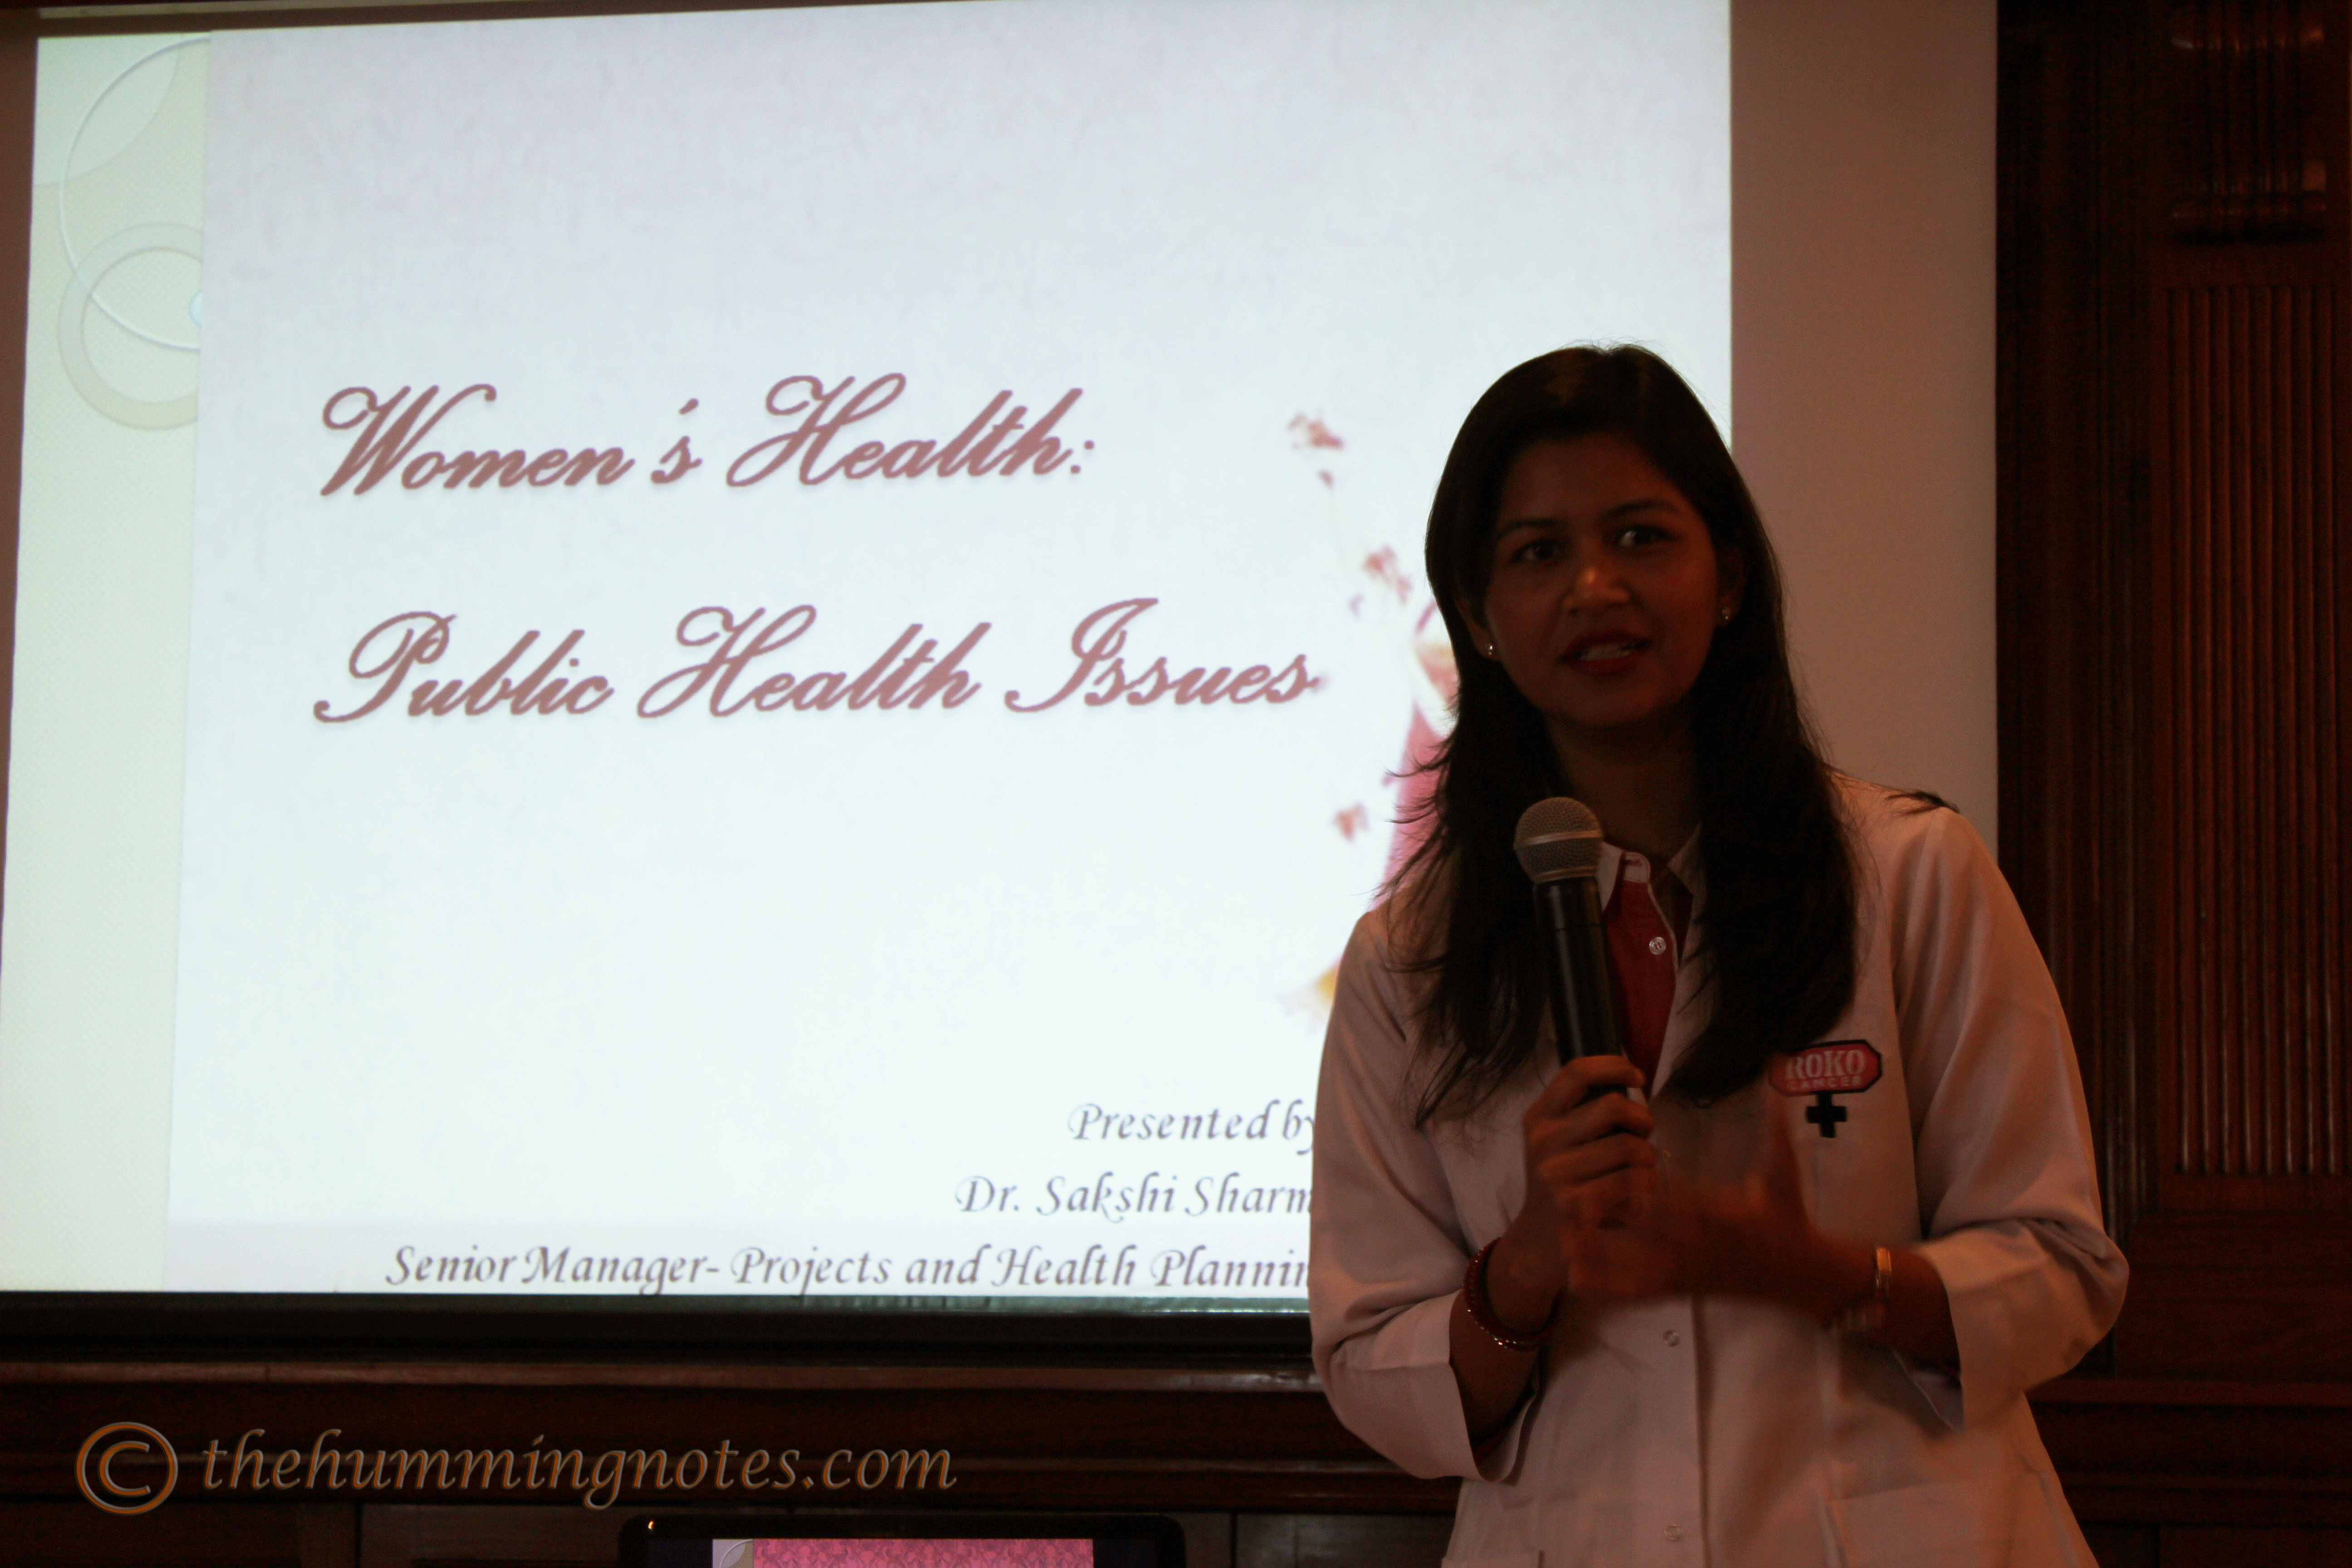 Dr. Sakshi Sharma taking the session on the importance of healthy living for women and preventing cancer